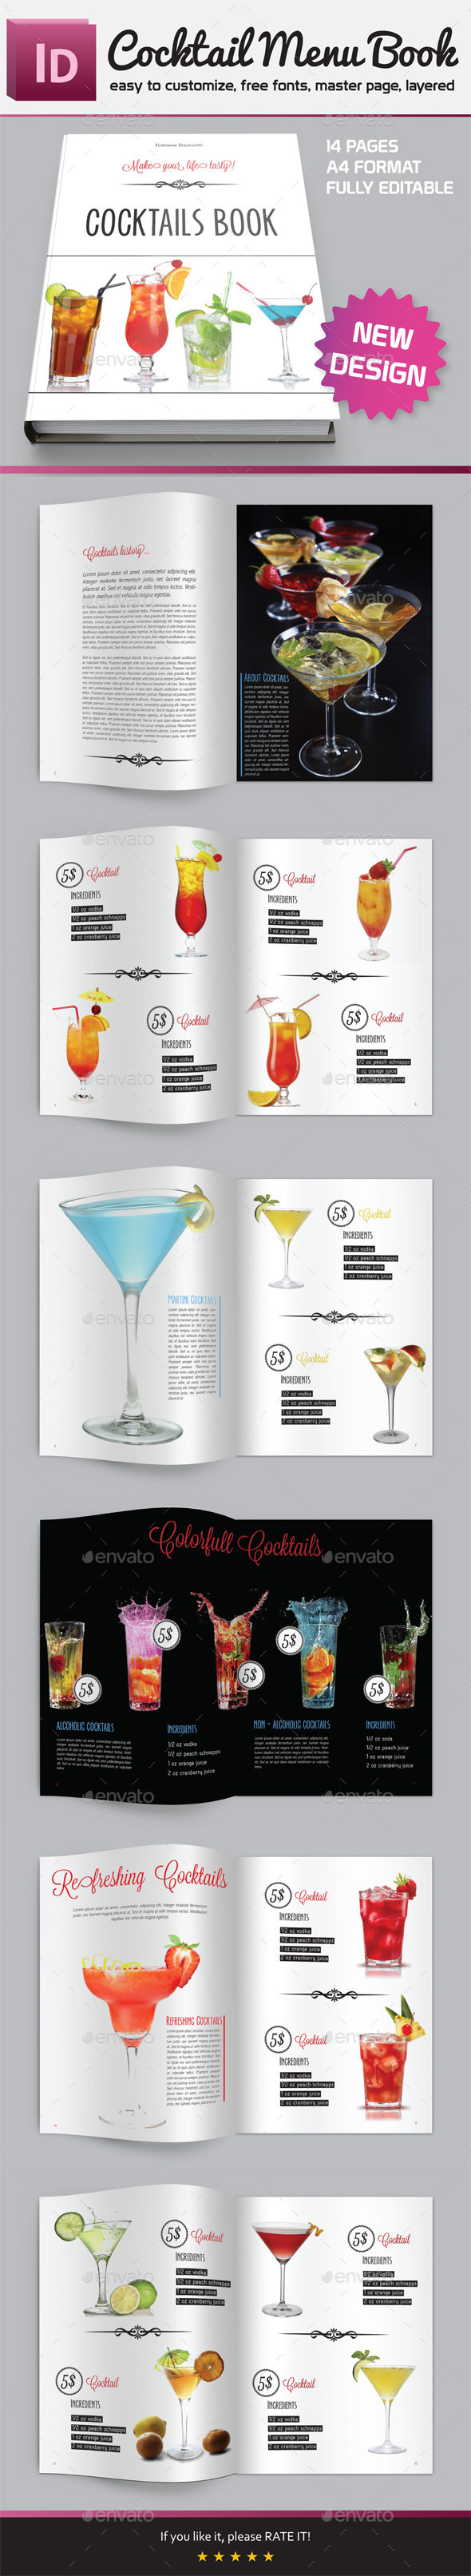 Cocktail Menu Book - Brochures Print Templates